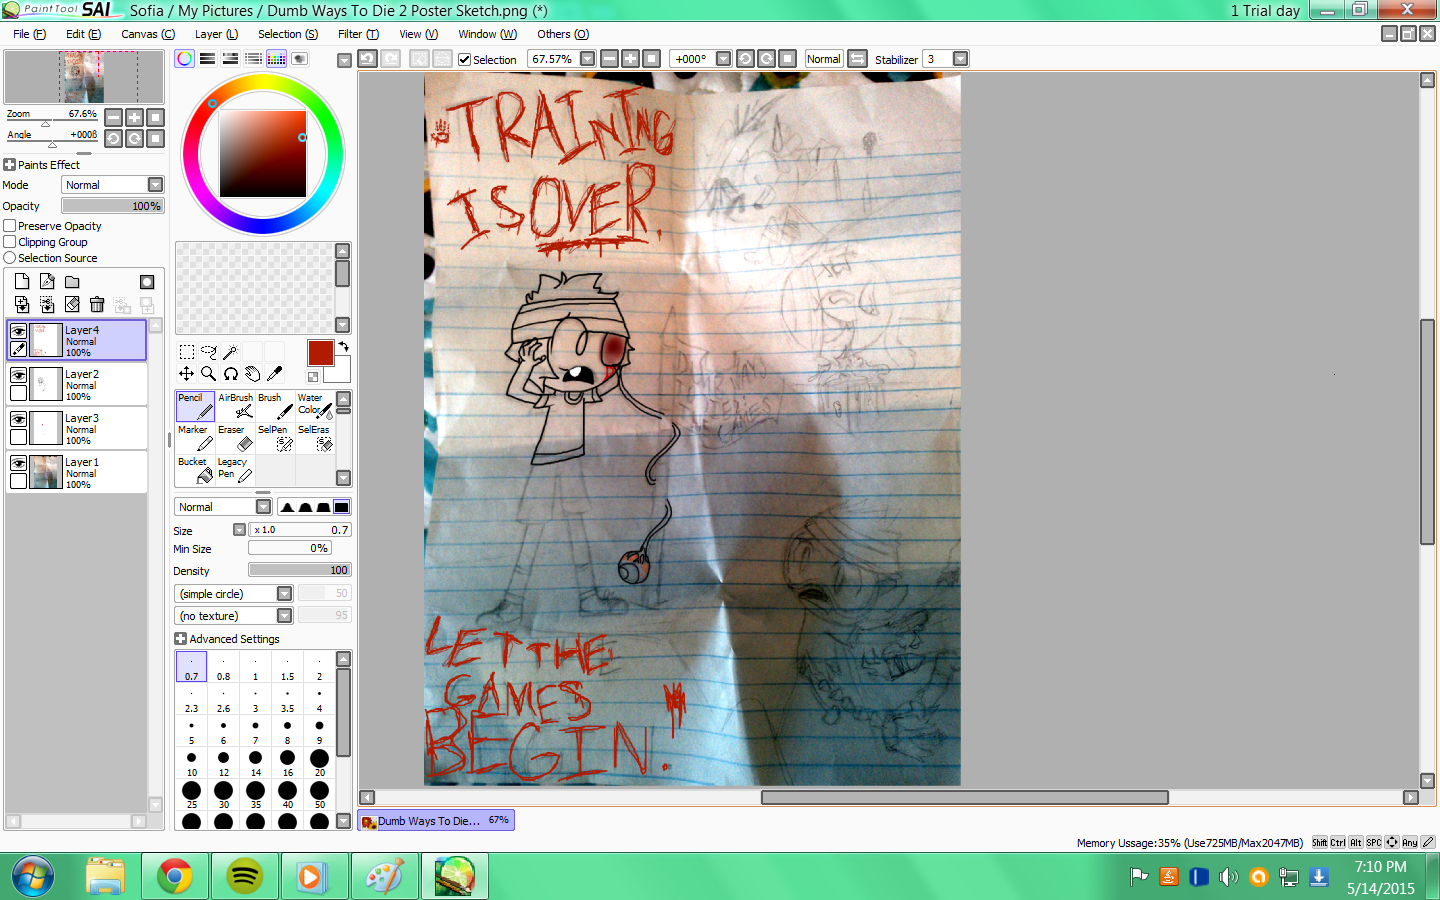 image so im starting to do stuff on paint tool sai png dumb ways